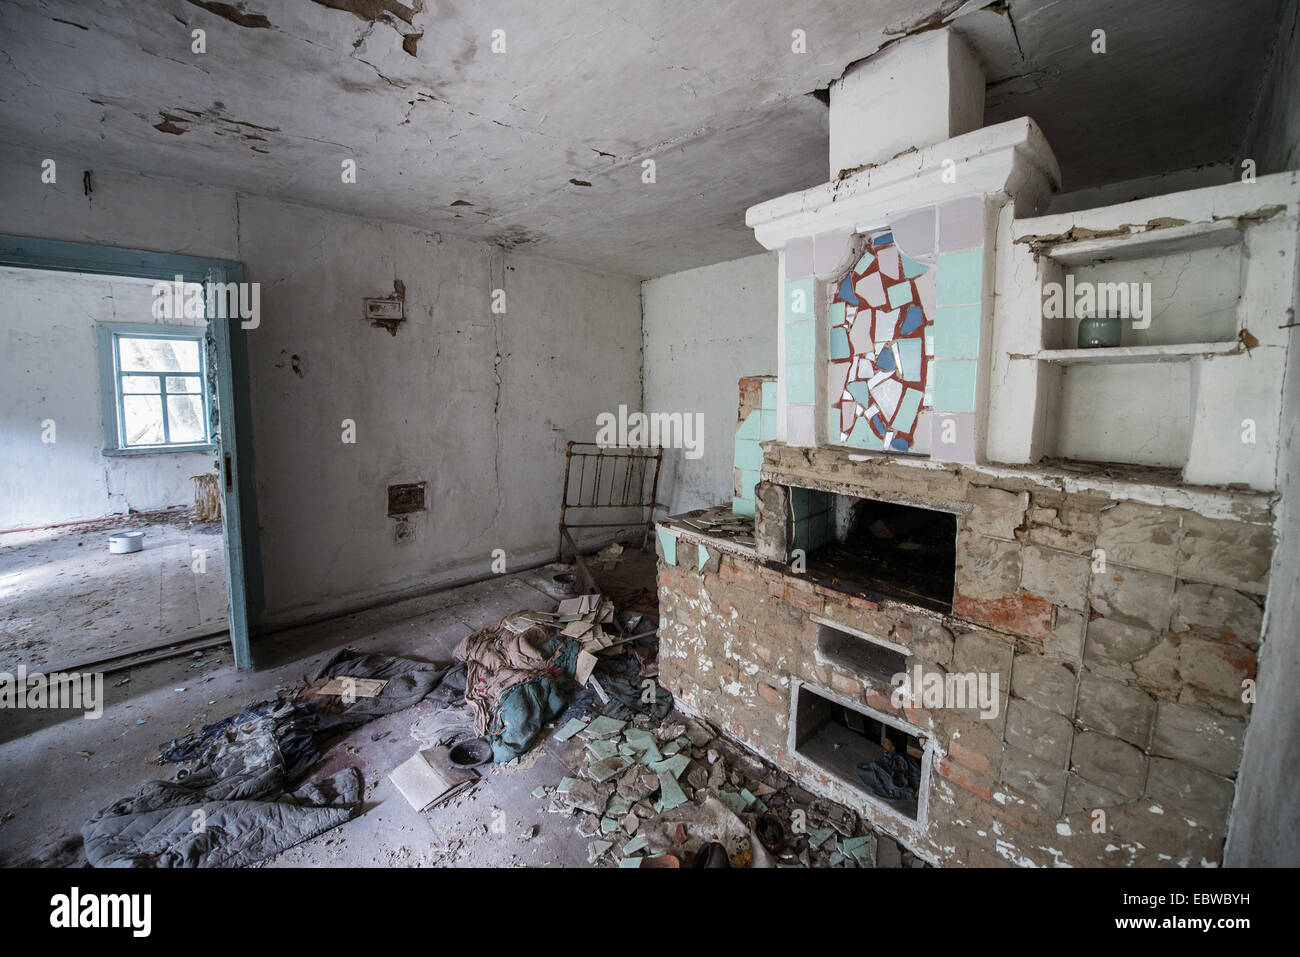 big stove with bedspace in old wooden cottage in abandoned Stechanka village, Chernobyl Exclusion Zone, Ukraine - Stock Image